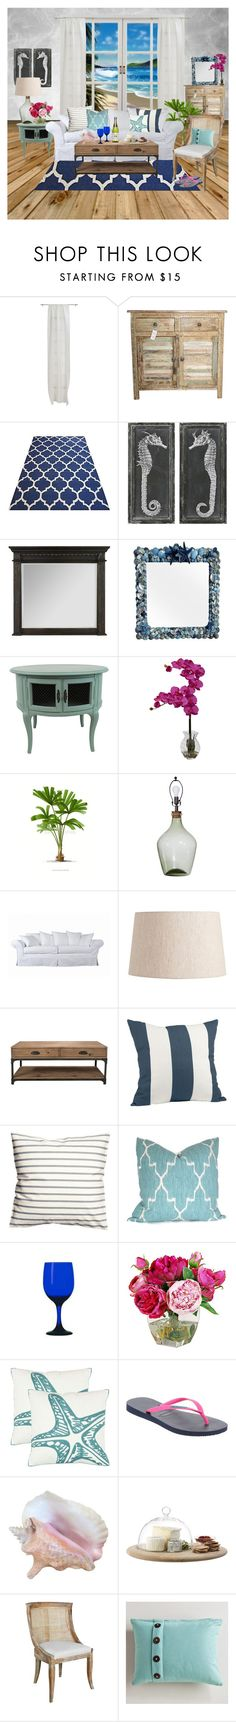 """""""Living Room by the Sea"""" by citkat777 ❤ liked on Polyvore featuring interior, interiors, interior design, home, home decor, interior decorating, CB2, Uttermost, Hooker Furniture and Nearly Natural"""